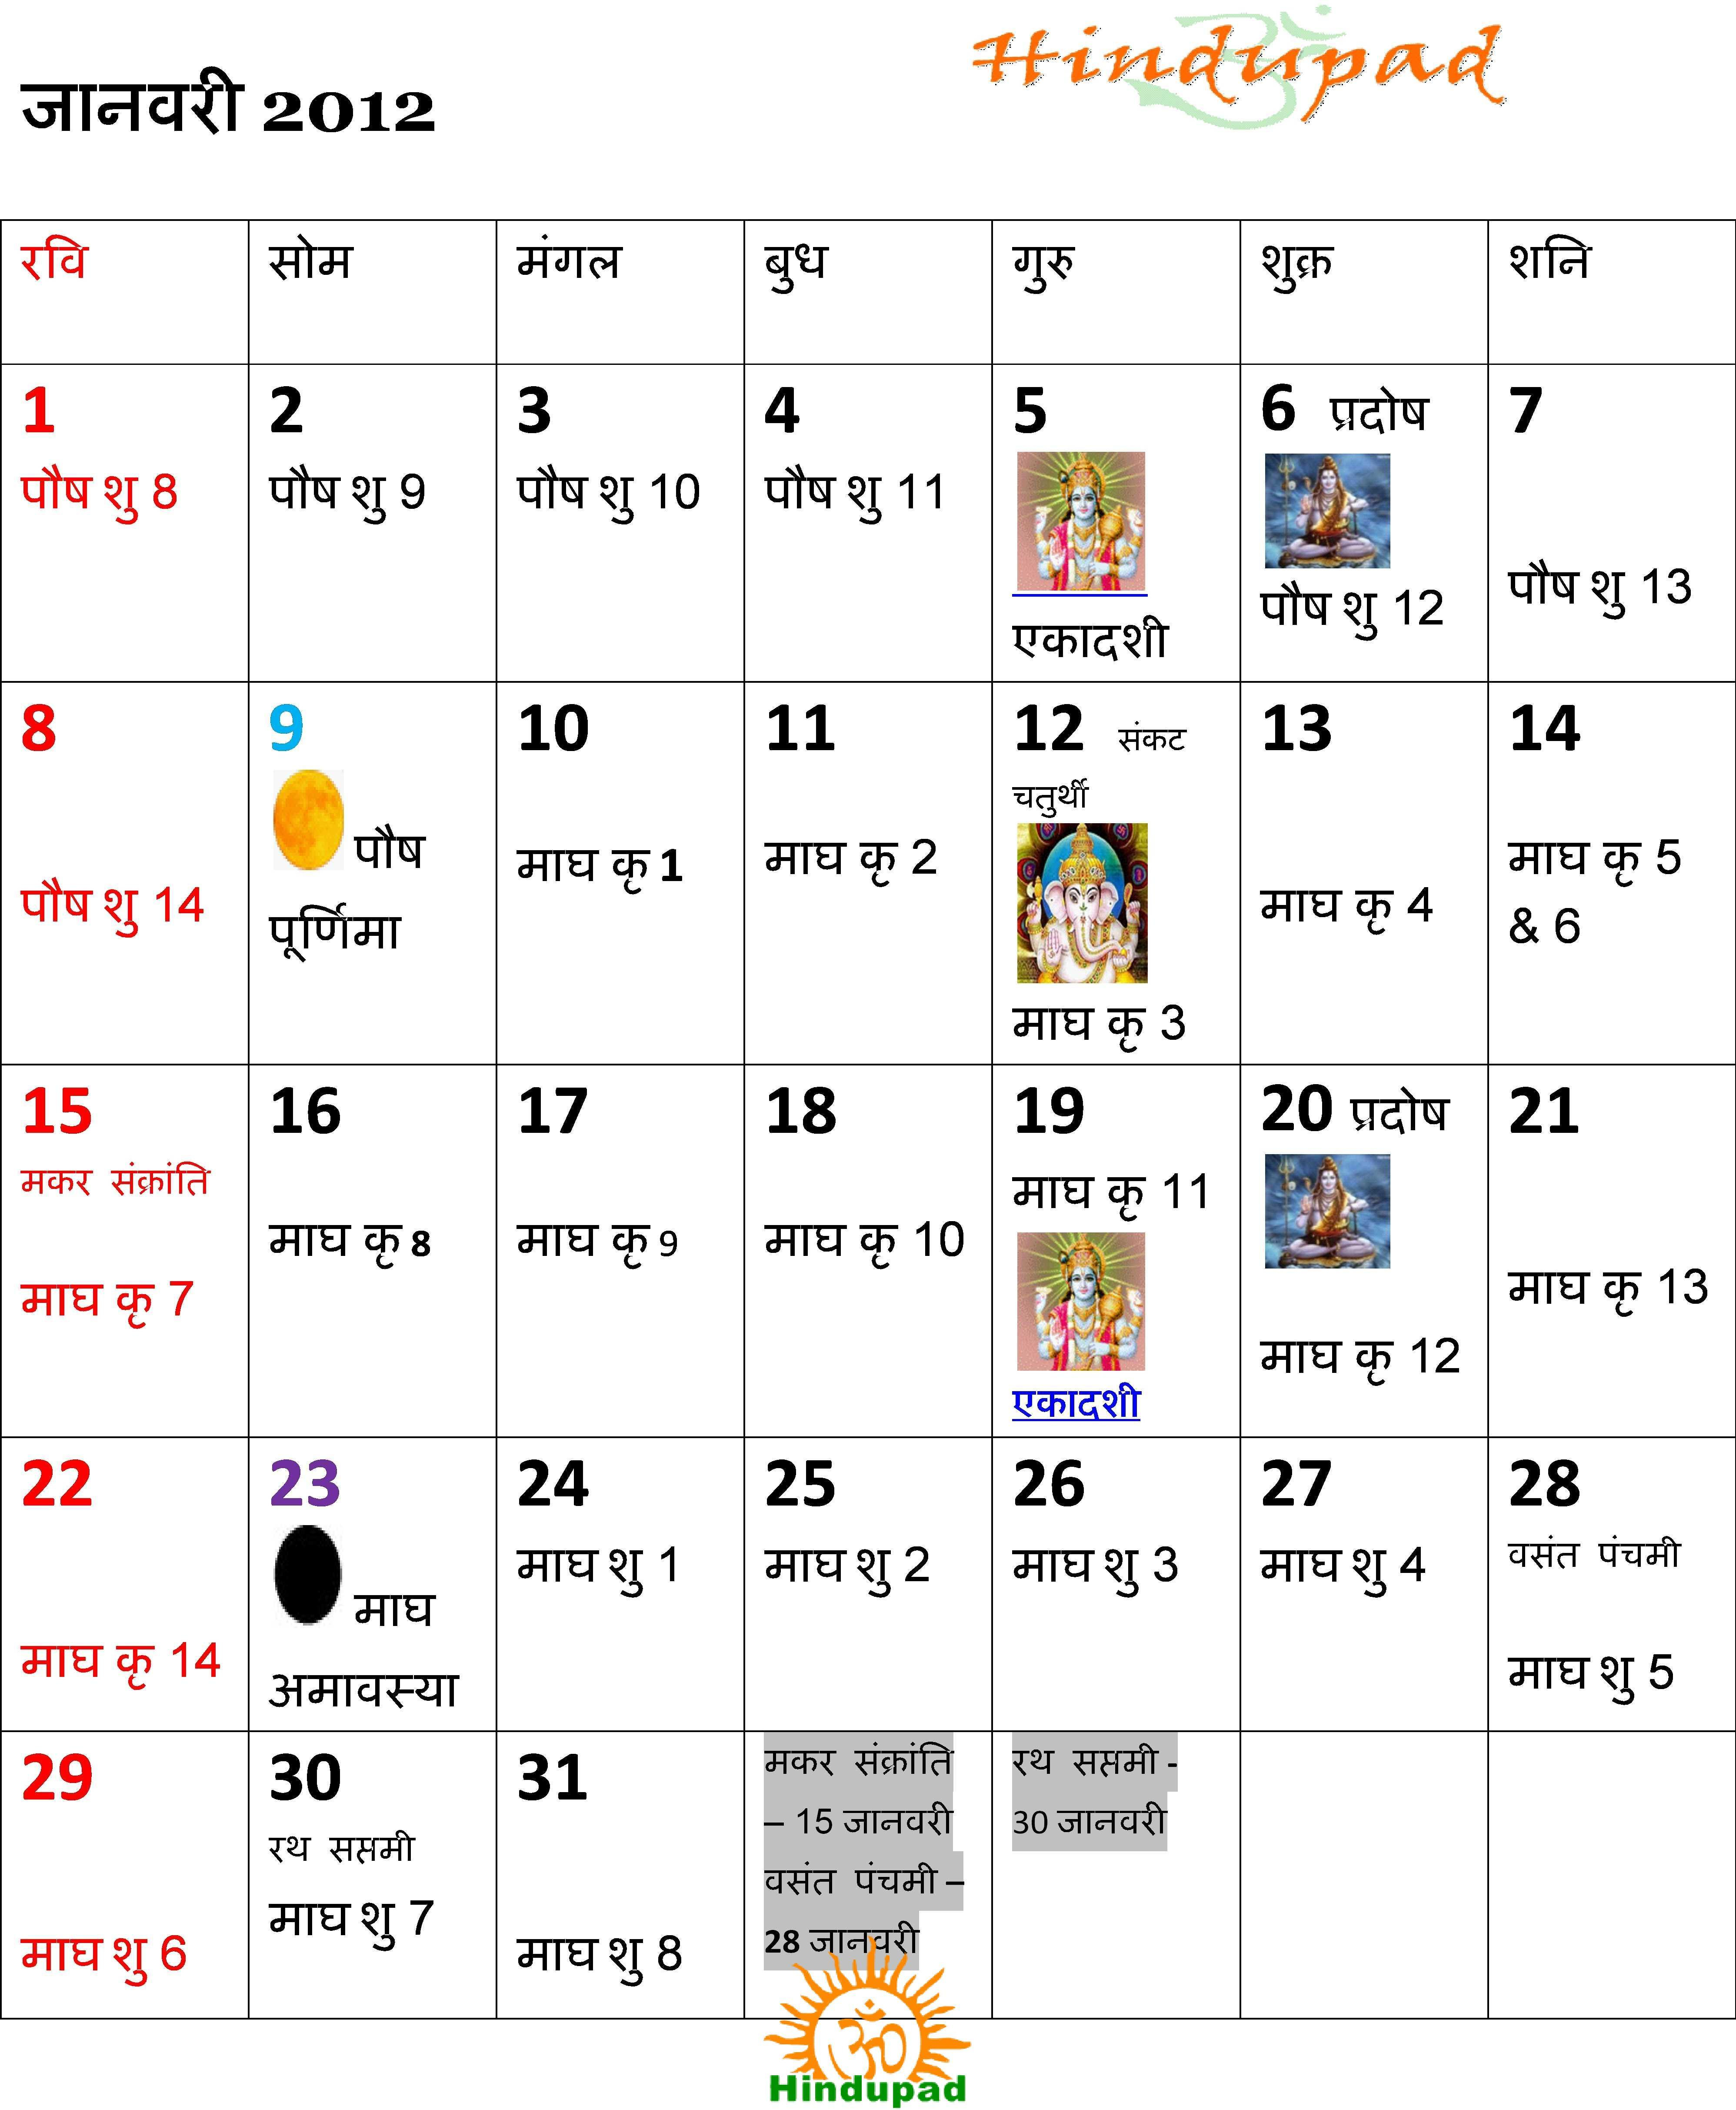 Hindu Calendar 2012 In Hindi With Tithi Pdf Download, Printable